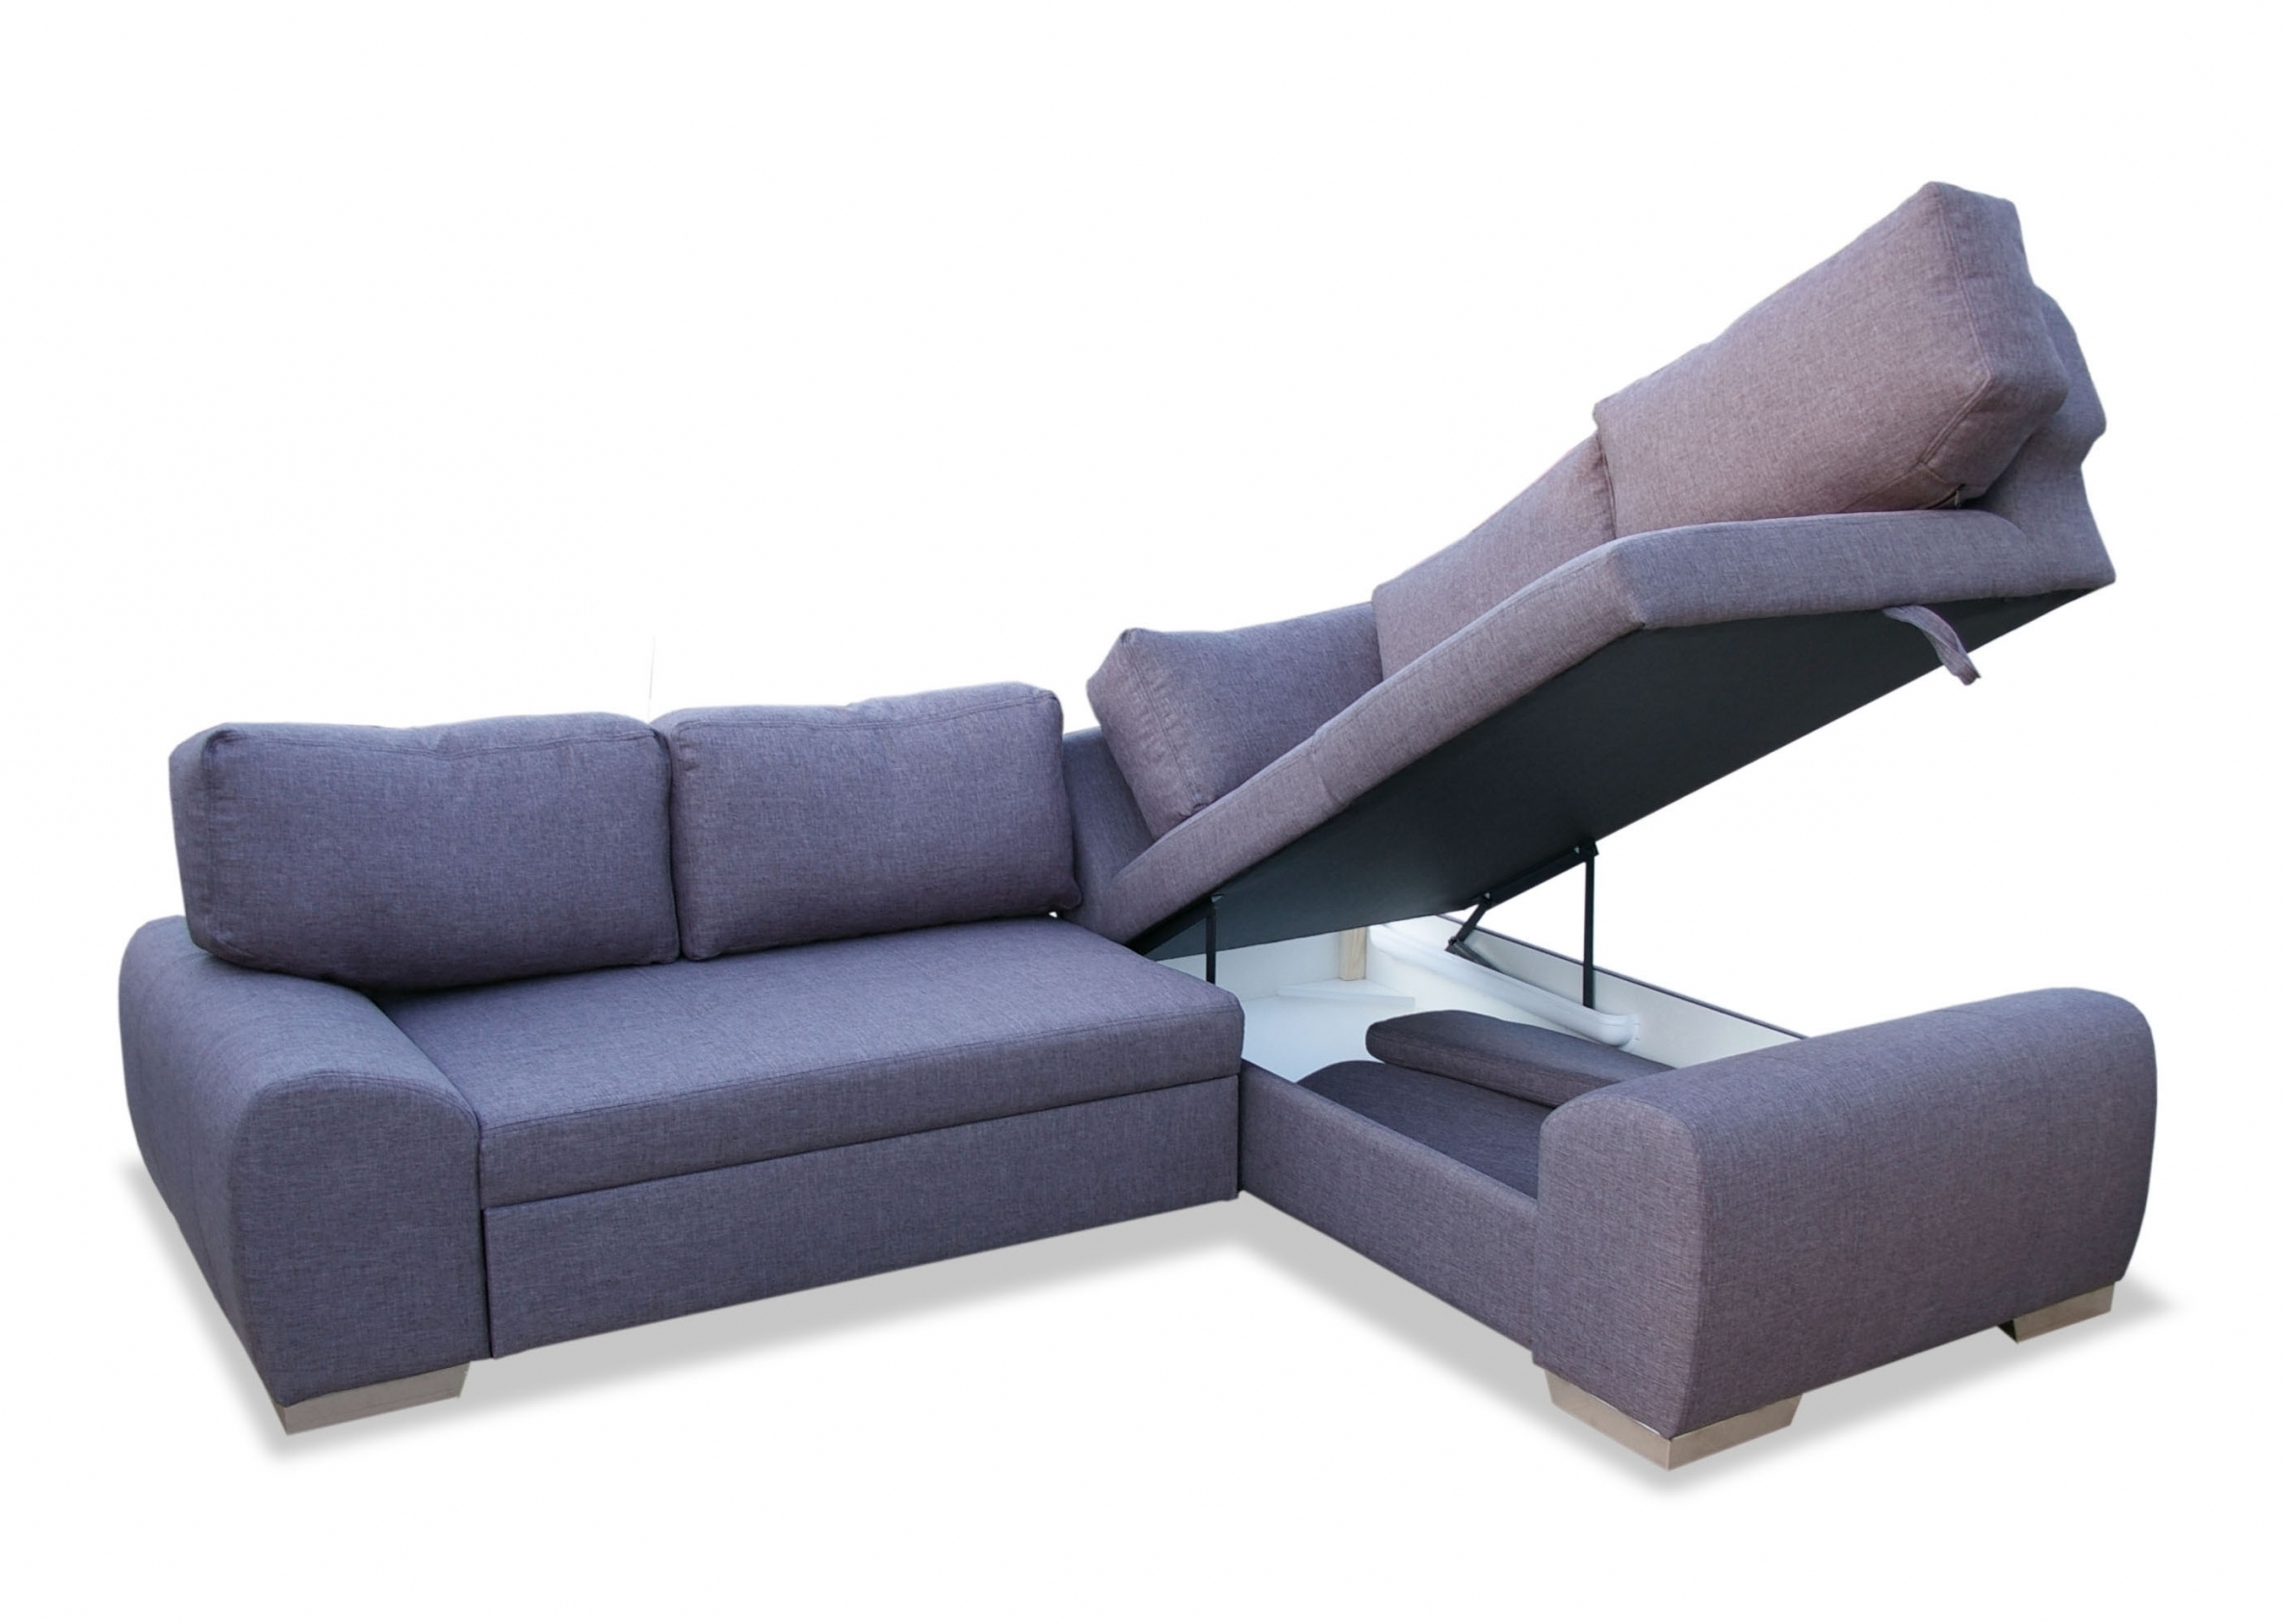 Famous Sectional Sofas With Storage Pertaining To Luxury Sectional Sofa With Storage Lovely – Intuisiblog (View 5 of 20)